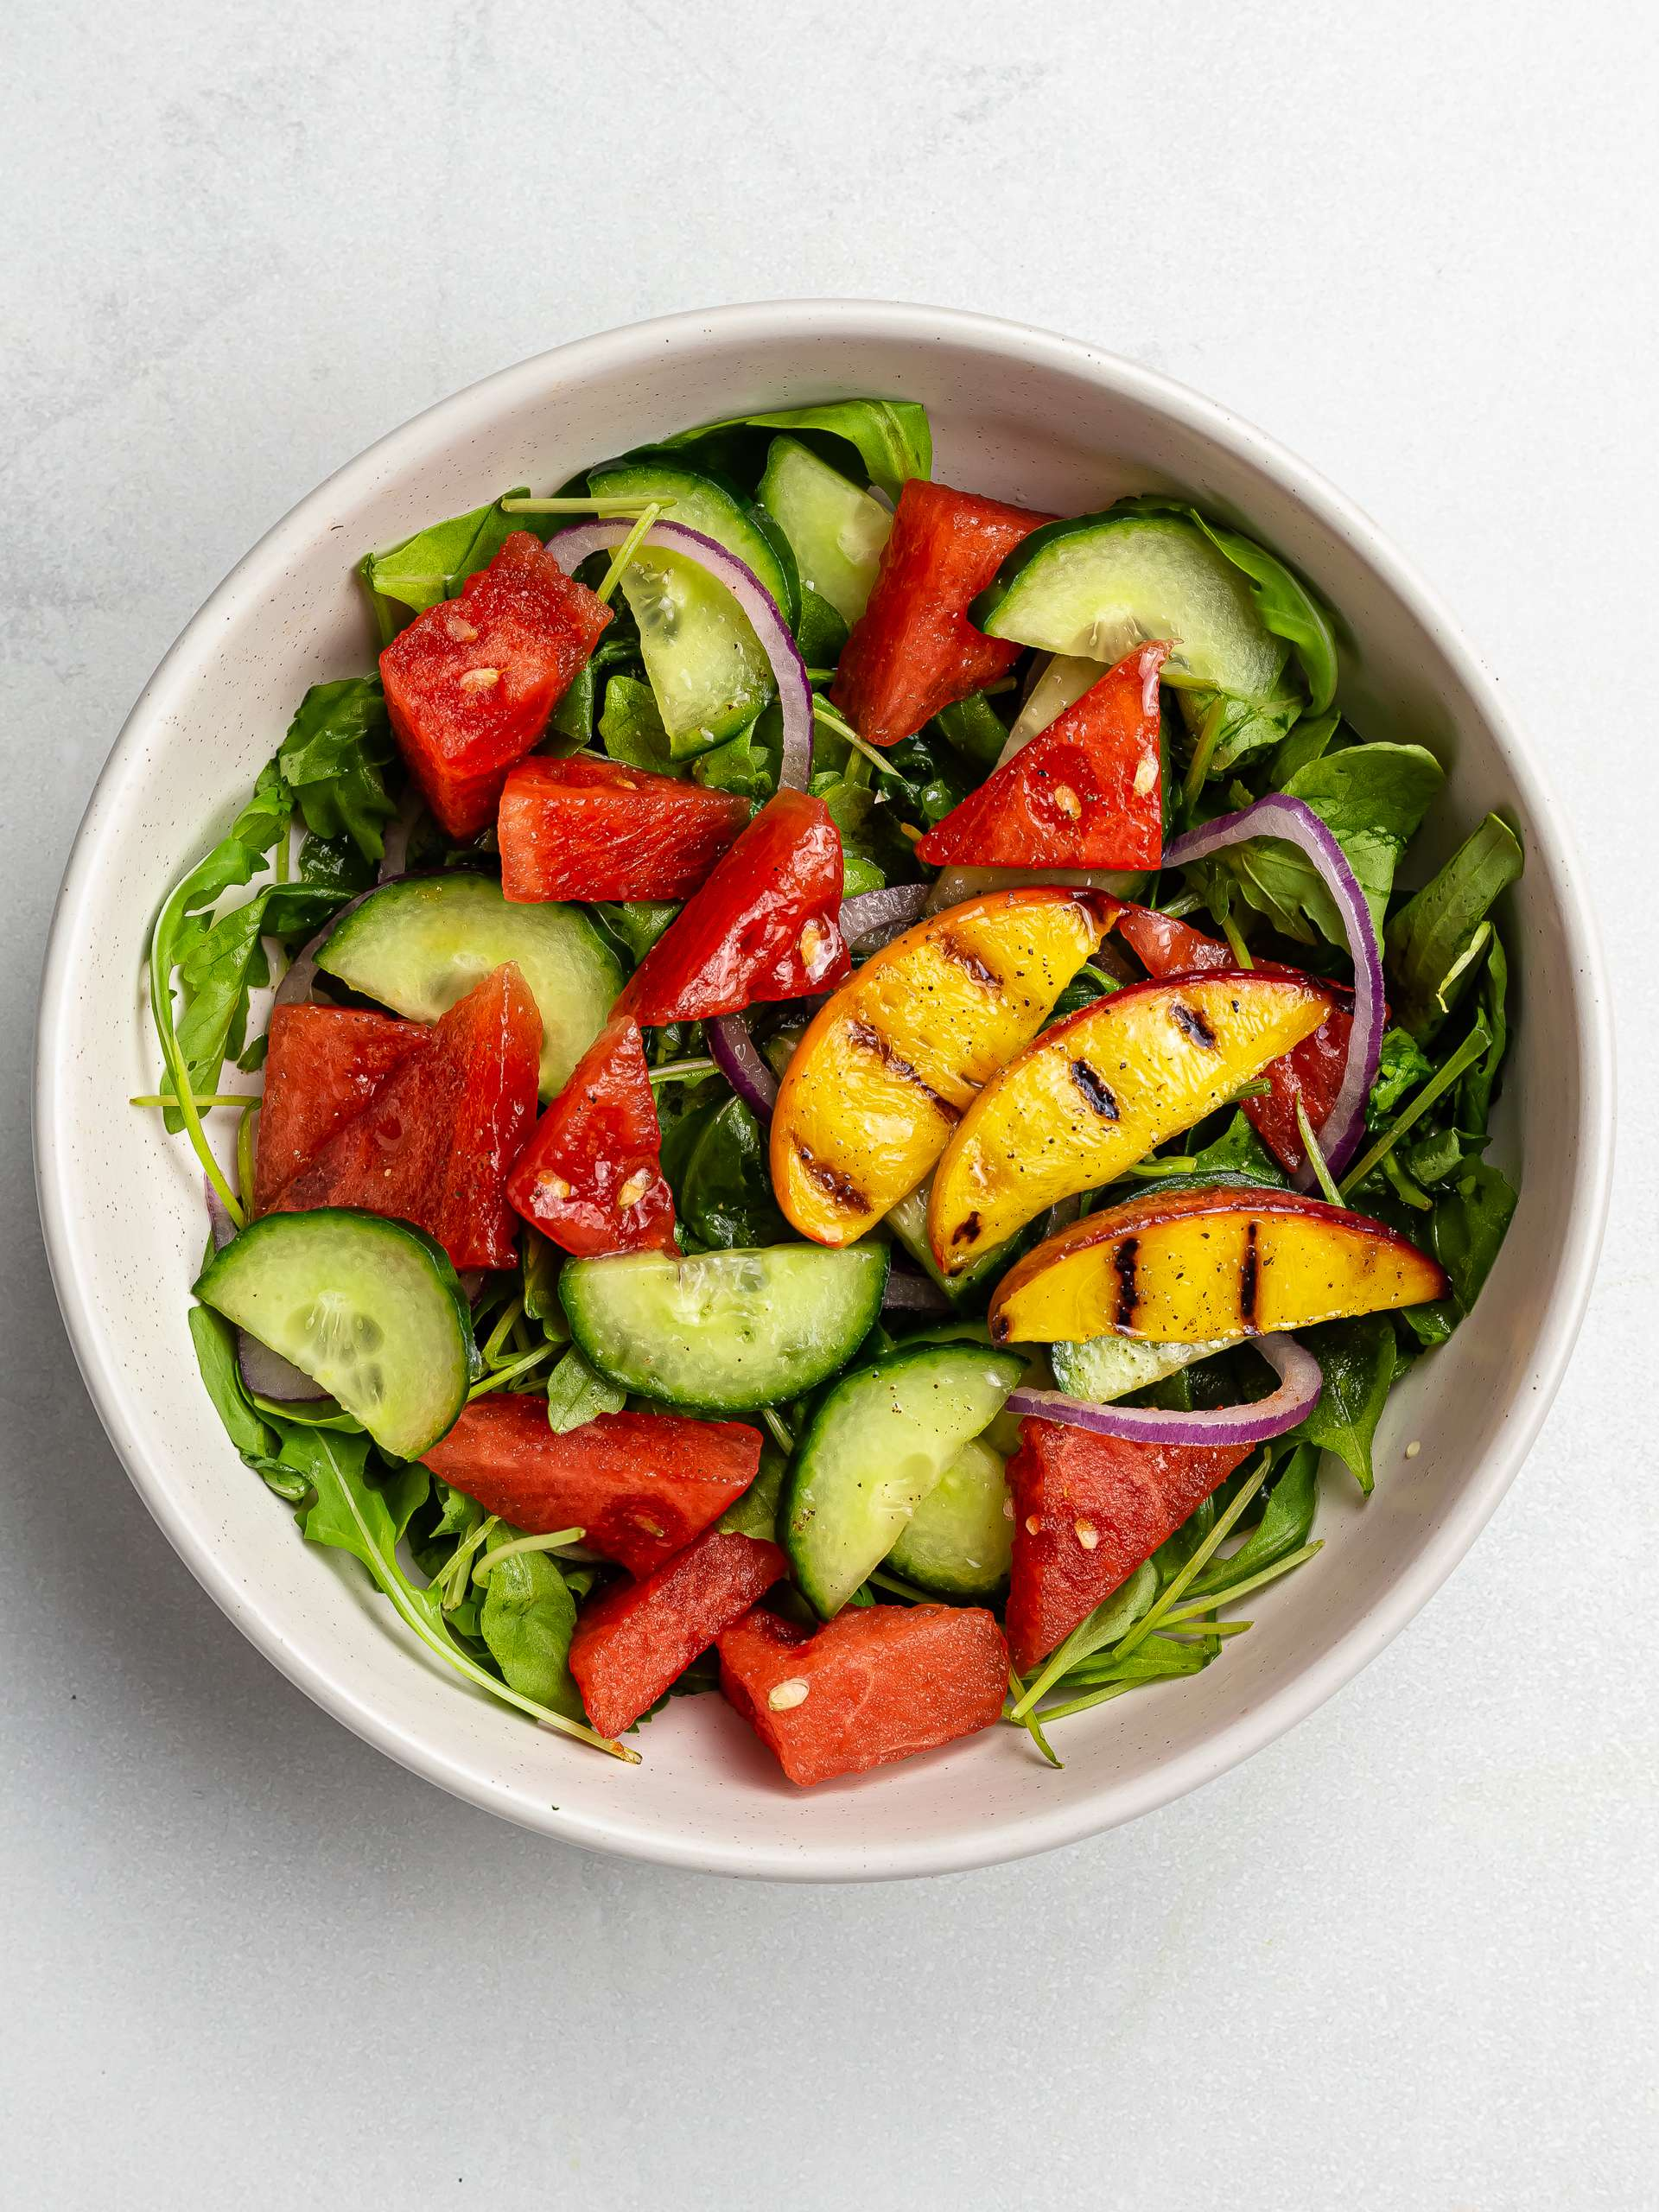 watermelon arugula salad with grilled peaches in a bowl